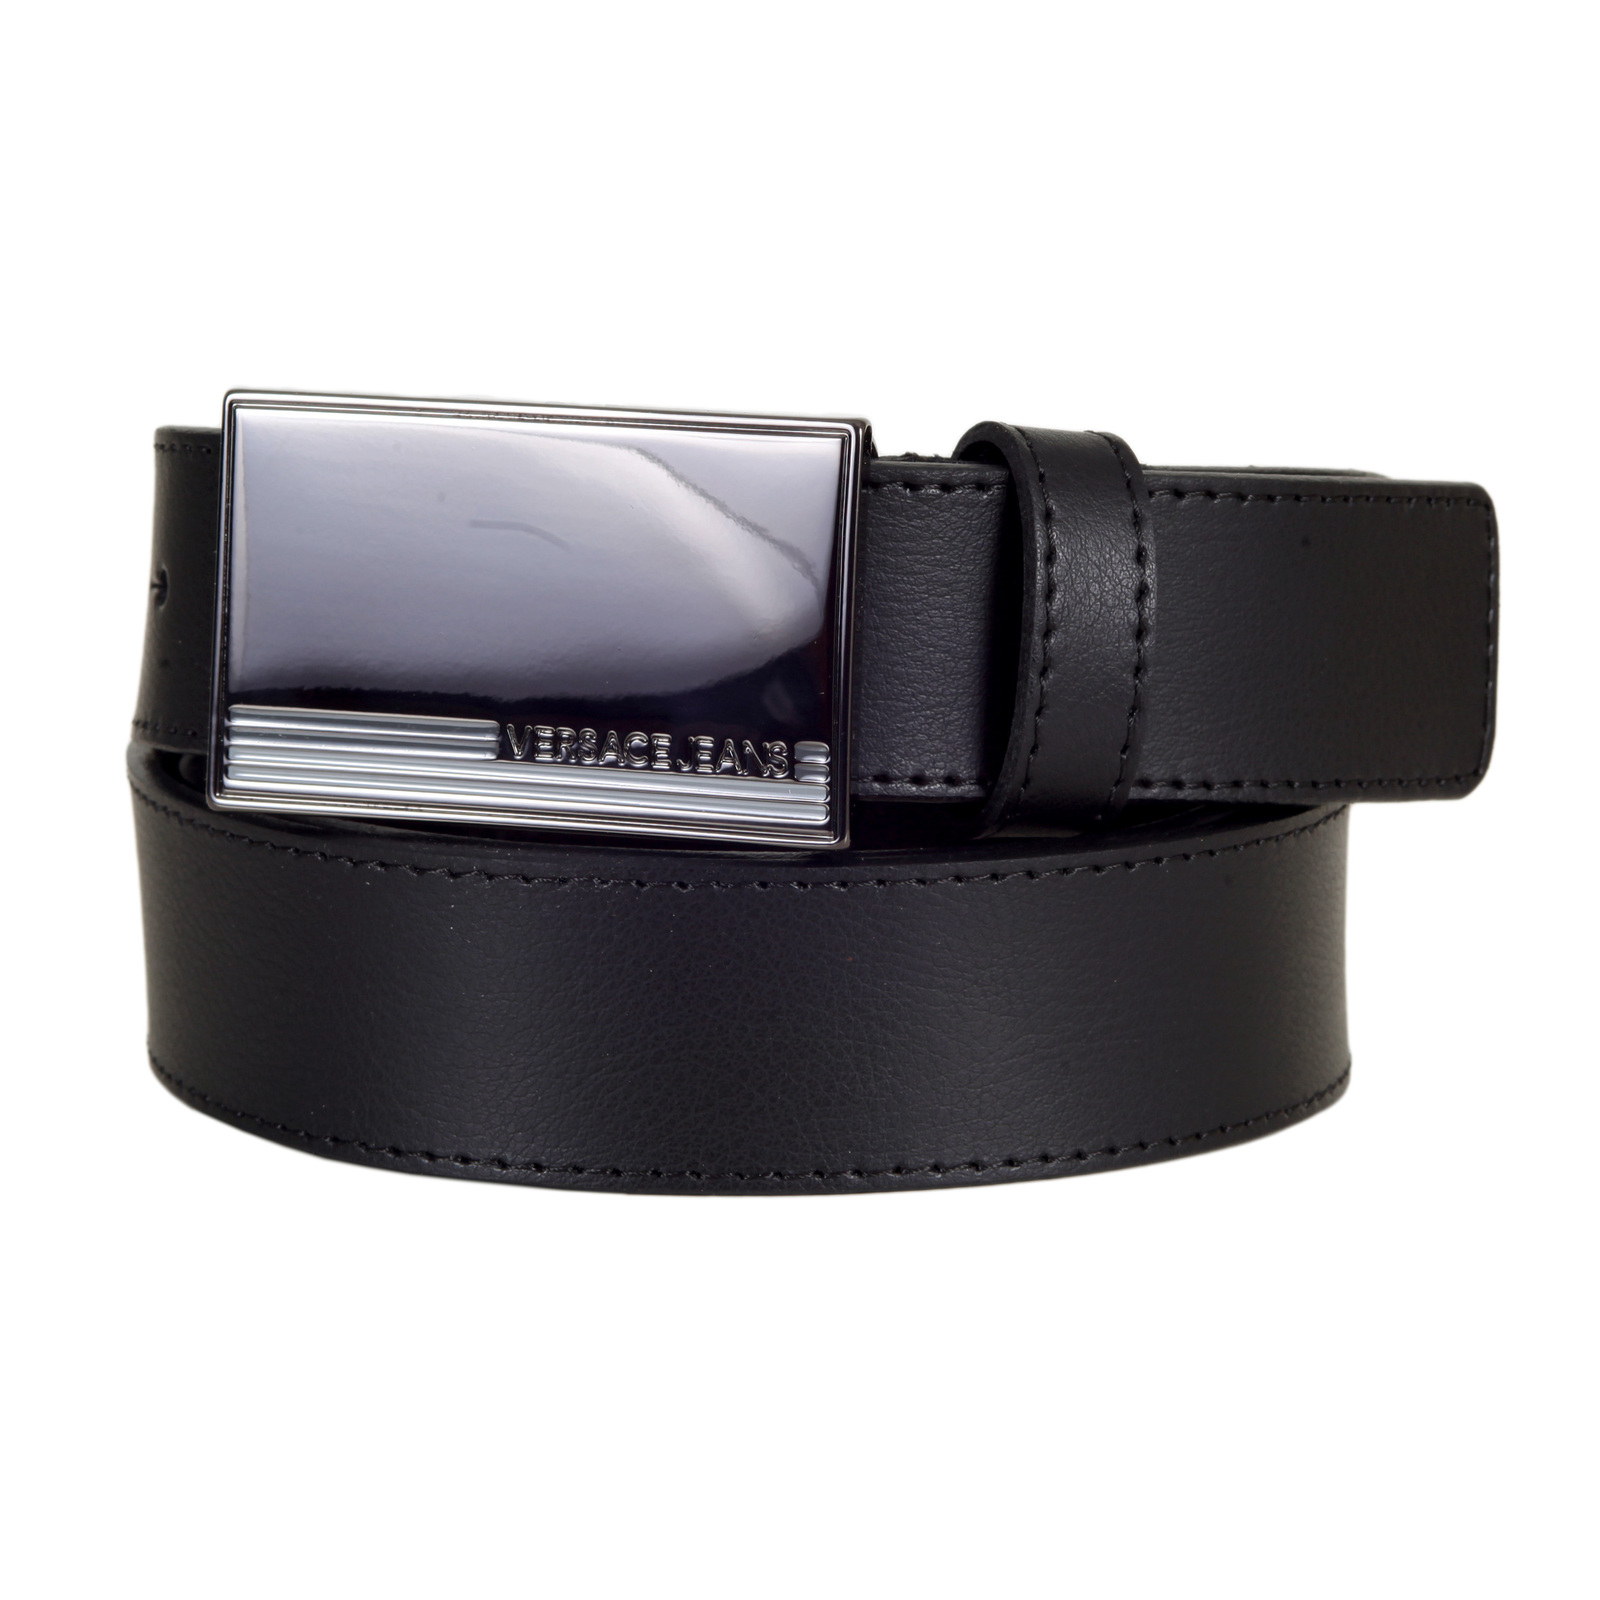 9cd16f18 Mens Black Leather Belt with Rectangular Gunmetal Colour Logo Embossed  Metal Pin Buckle by Versace Jeans VERS5525